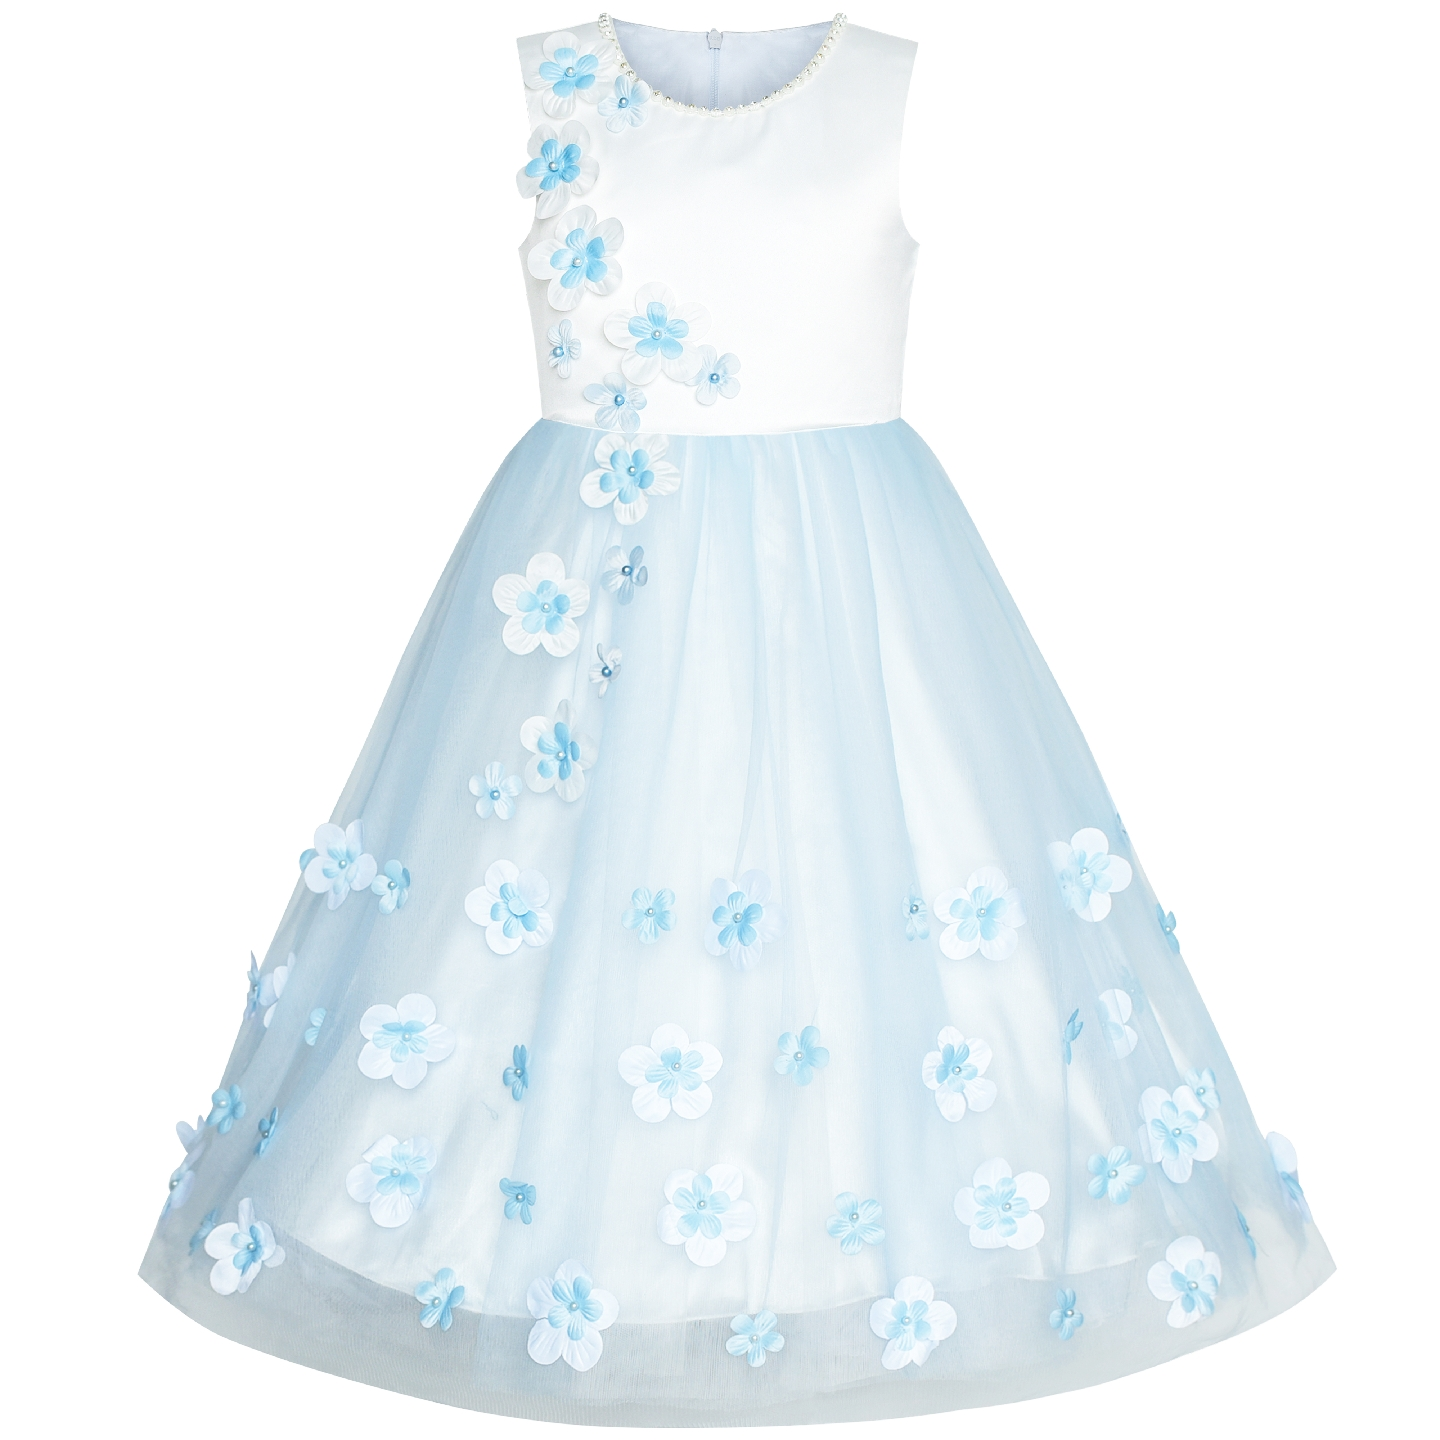 Flower Girls Dress Blue Petals Wedding Bridesmaid Birthday Party 2019 Summer Princess Dresses Girl Clothes Pageant Sundress girls dress blue flower bow tie tulle party princess 2018 summer wedding dresses kids clothes size 4 12 pageant sundress